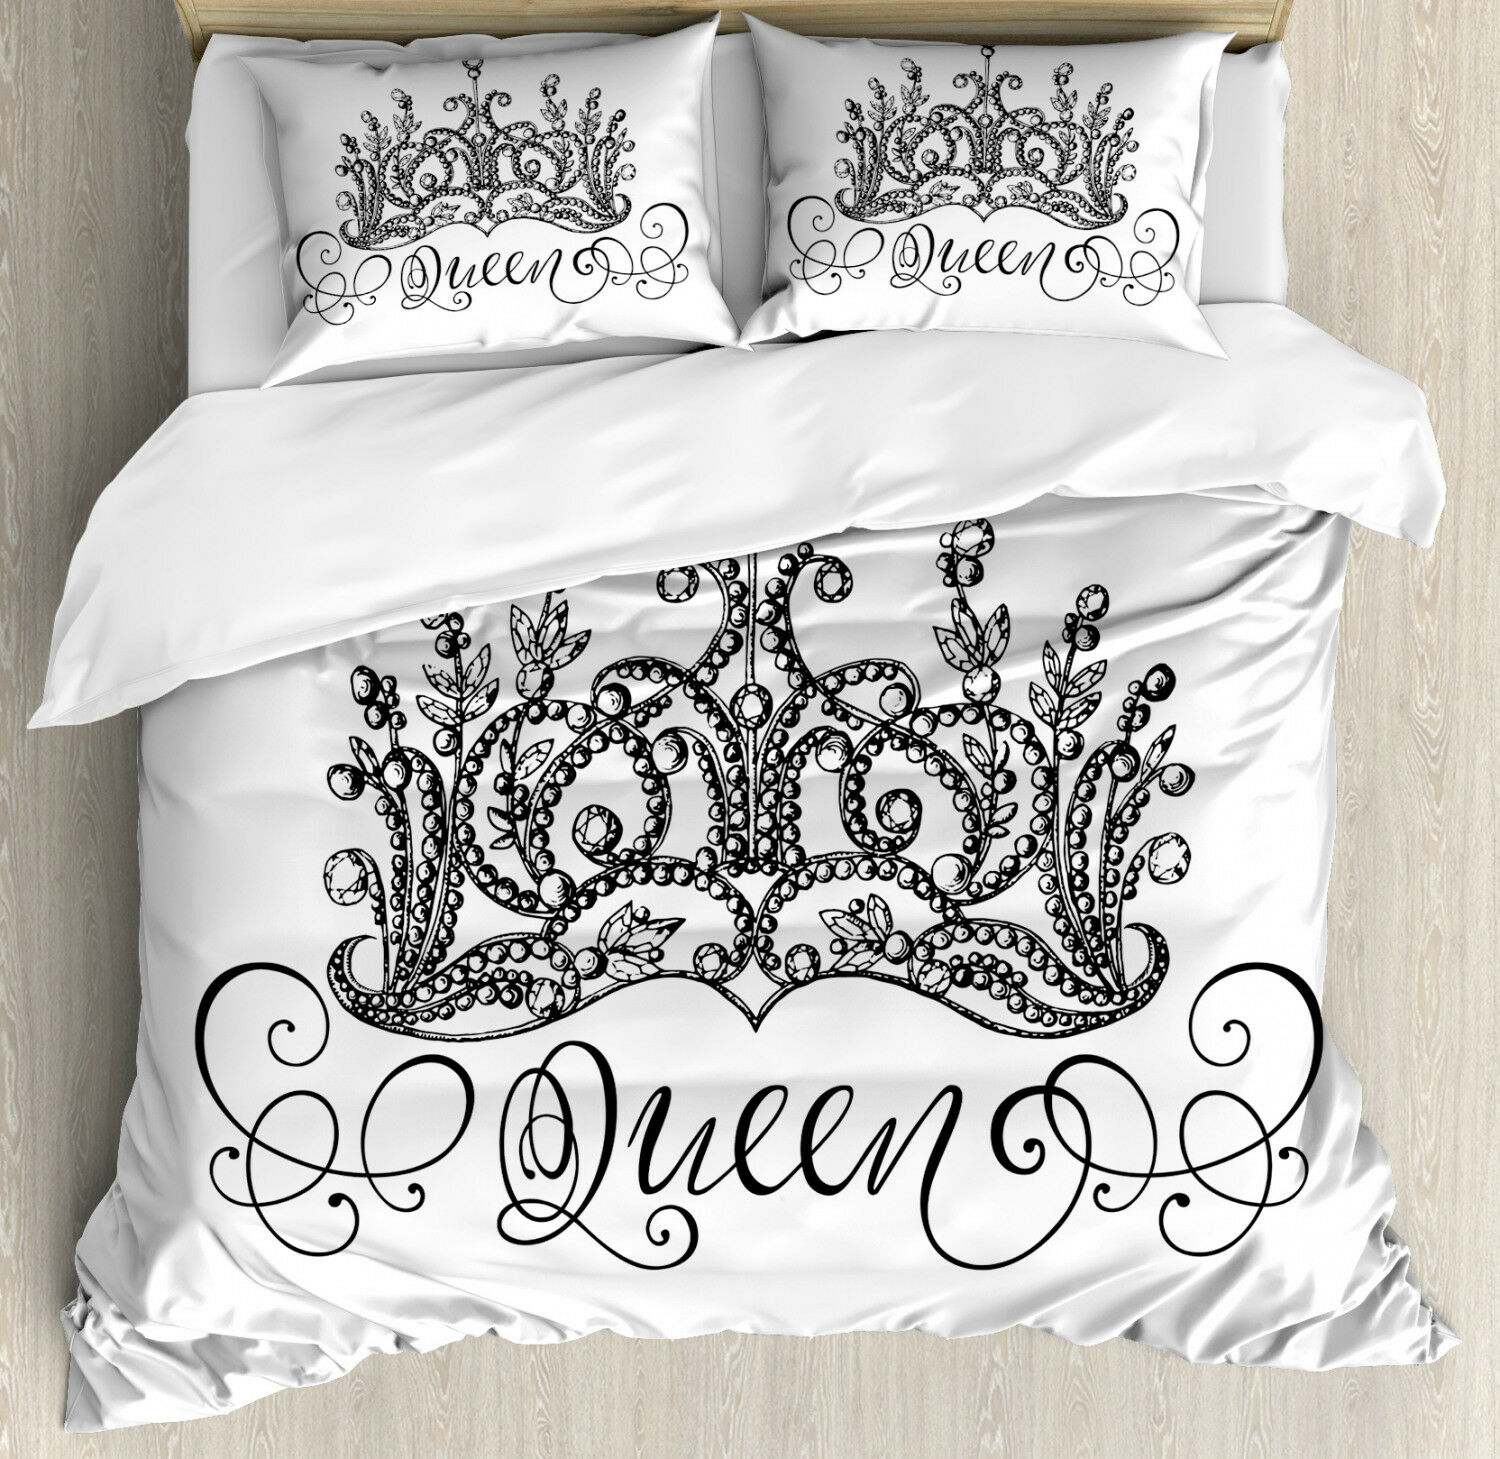 Queen Duvet Cover Set with Pillow Shams Crown Lettering Baroque Print